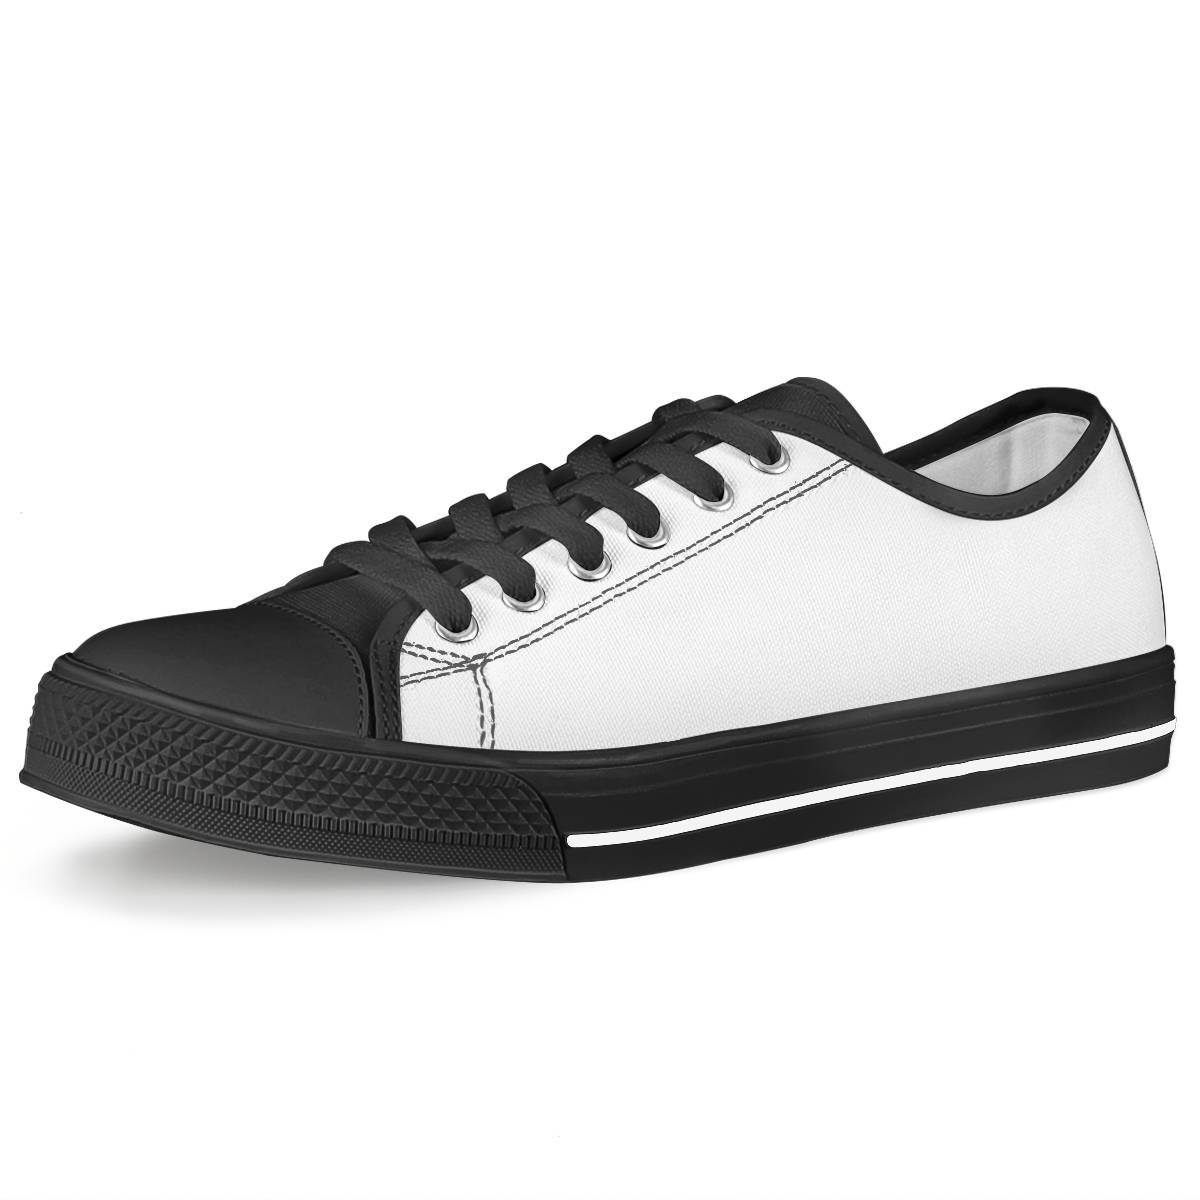 All Over Print Sublimated - Black Low Top Canvas Shoes